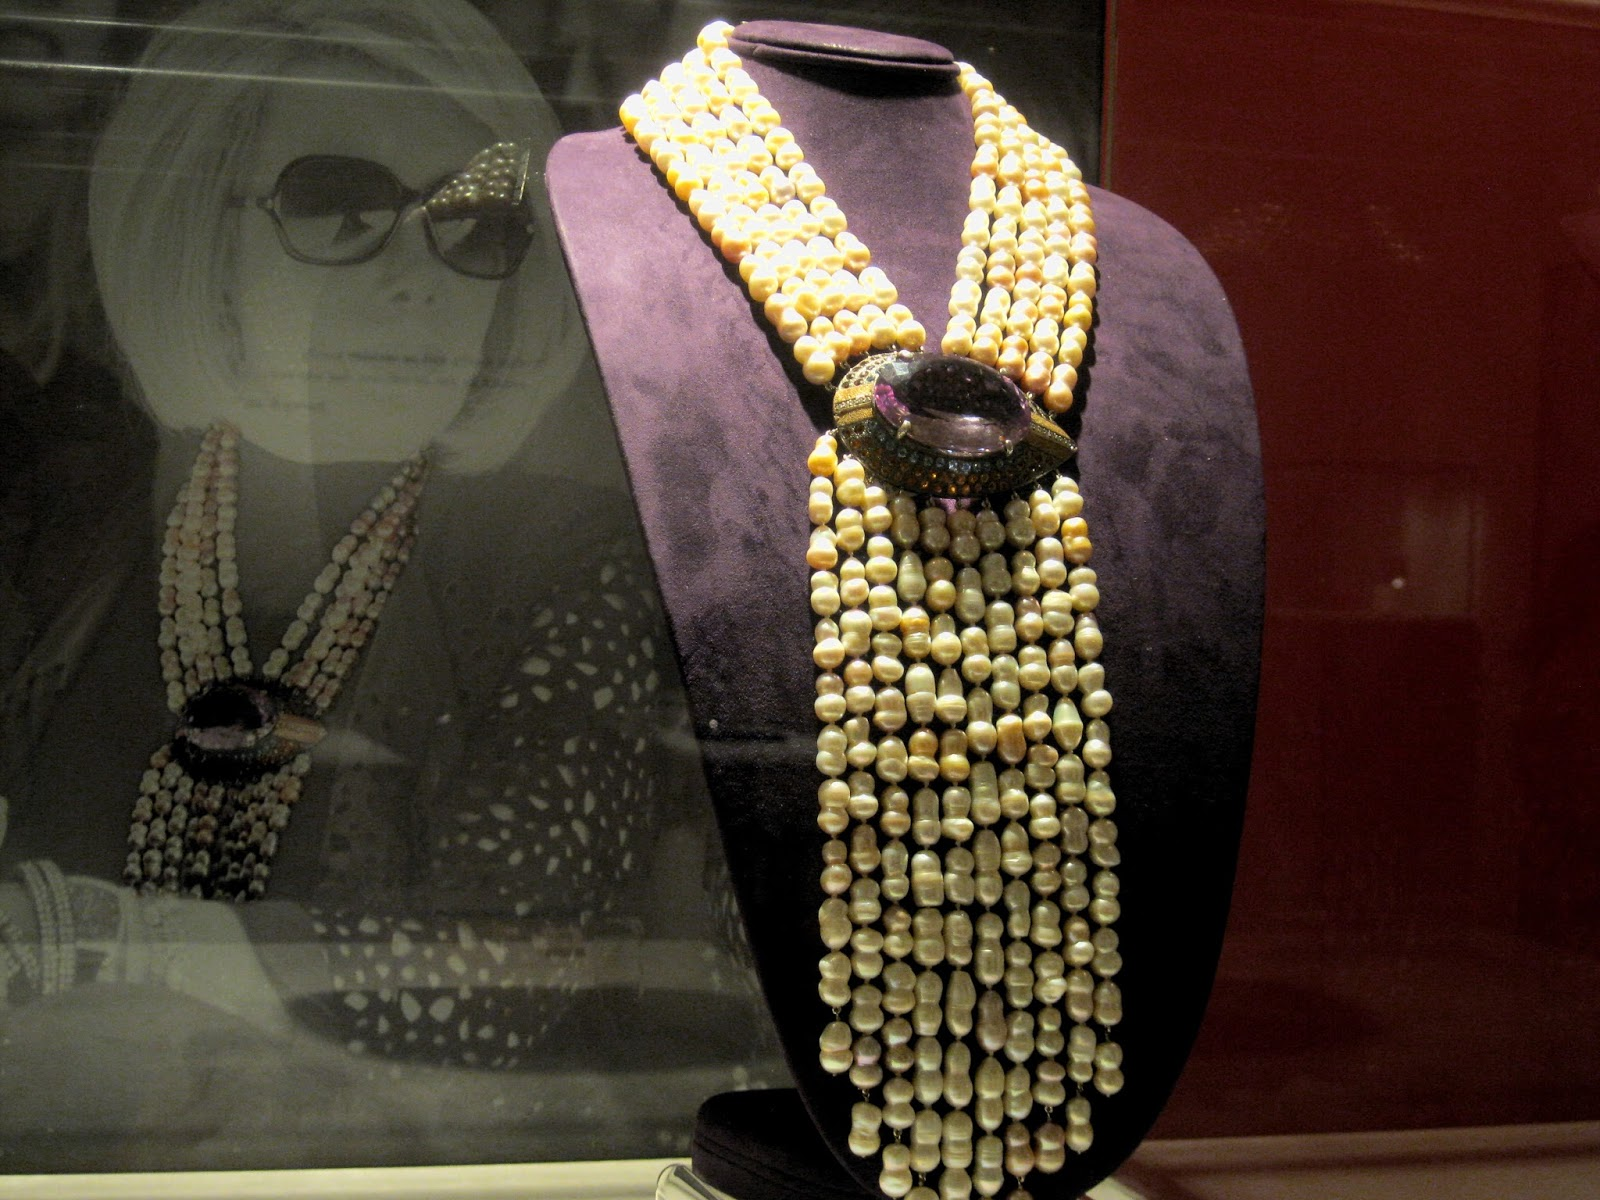 Joan Rivers' Private Collection Freshwater Cultured Pearl and Mulit-Gemmed Necklace [photo/edit by sookietex]